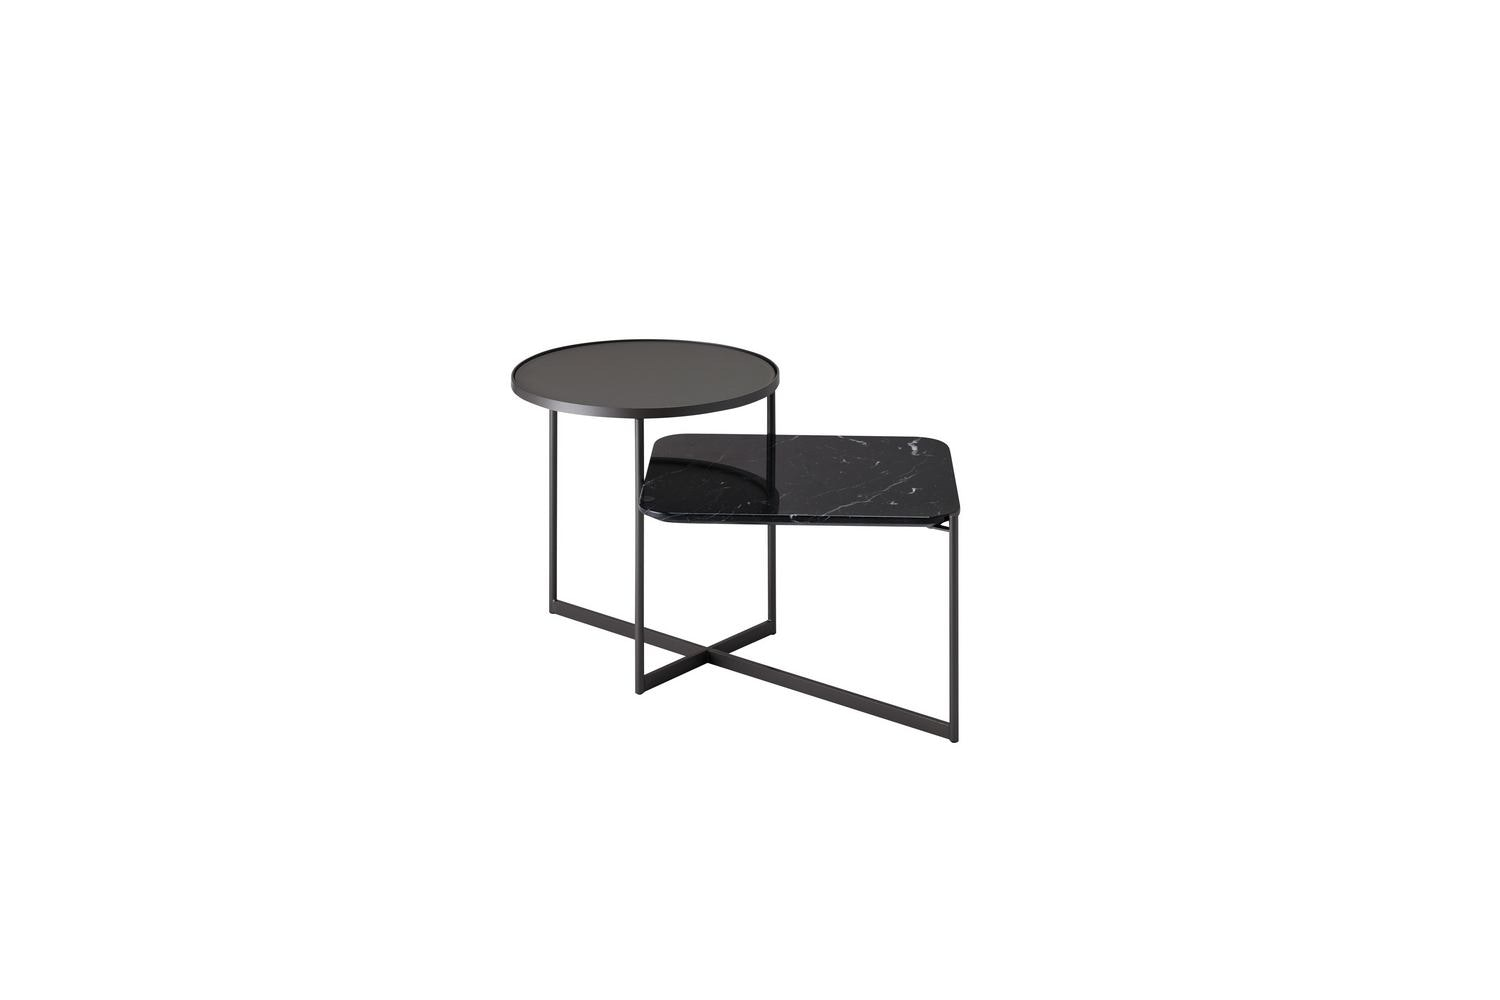 Mohana Table Medium by Tim Rundle for SP01